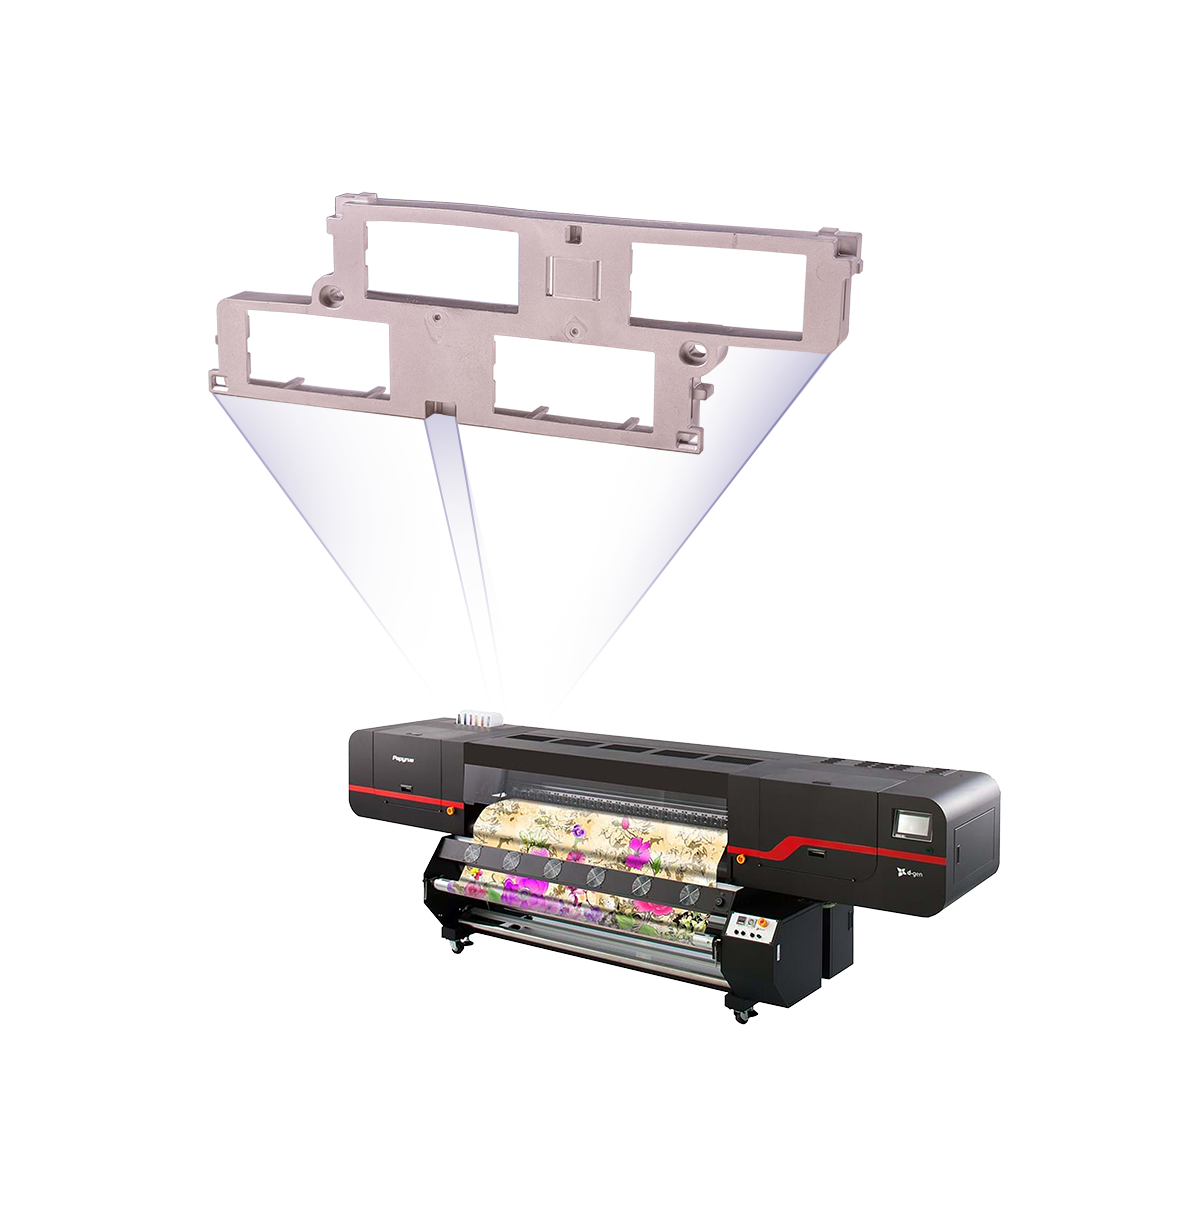 13_large_scale_printer_frame.png